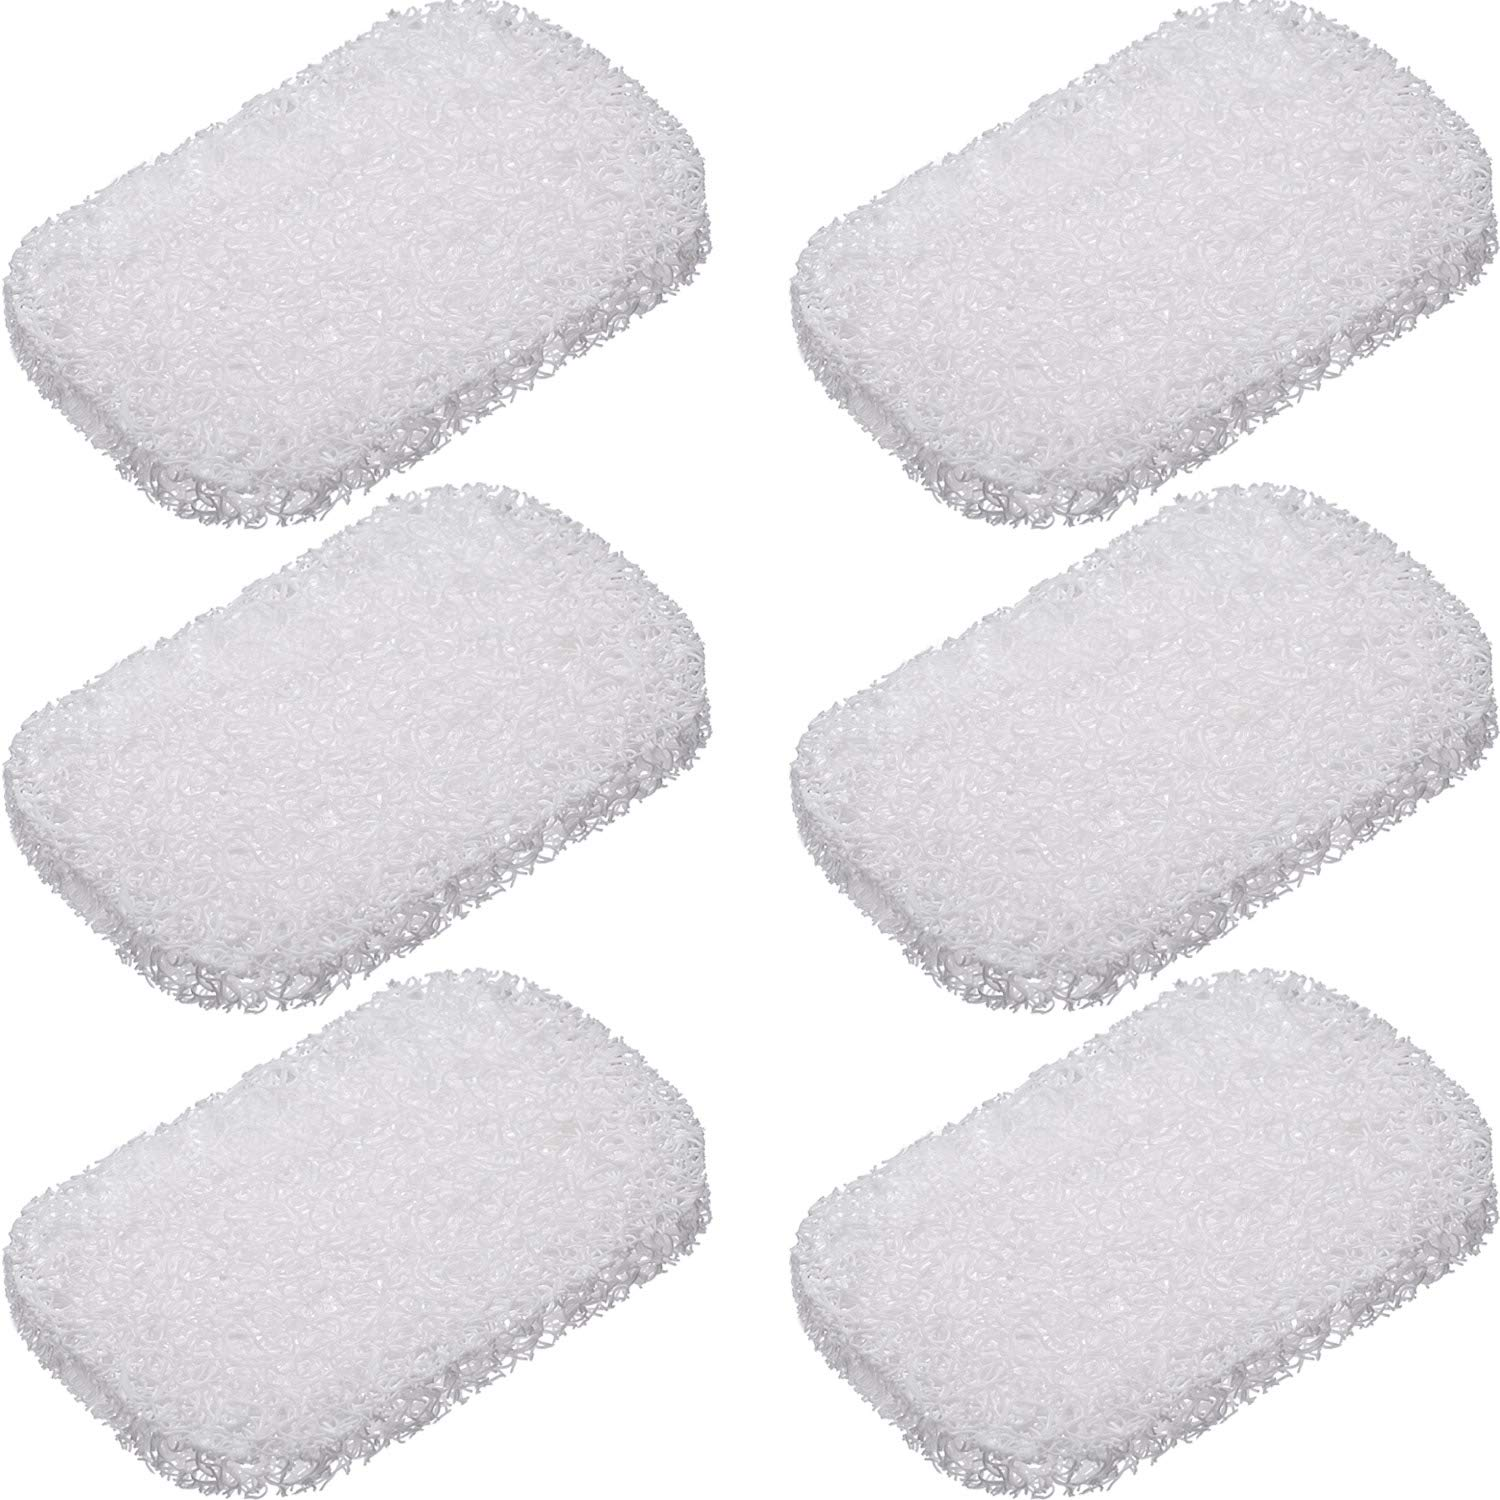 BBTO 10 Pack Soap Saver, Soap Dish Soap Holder Accessory (White) by BBTO